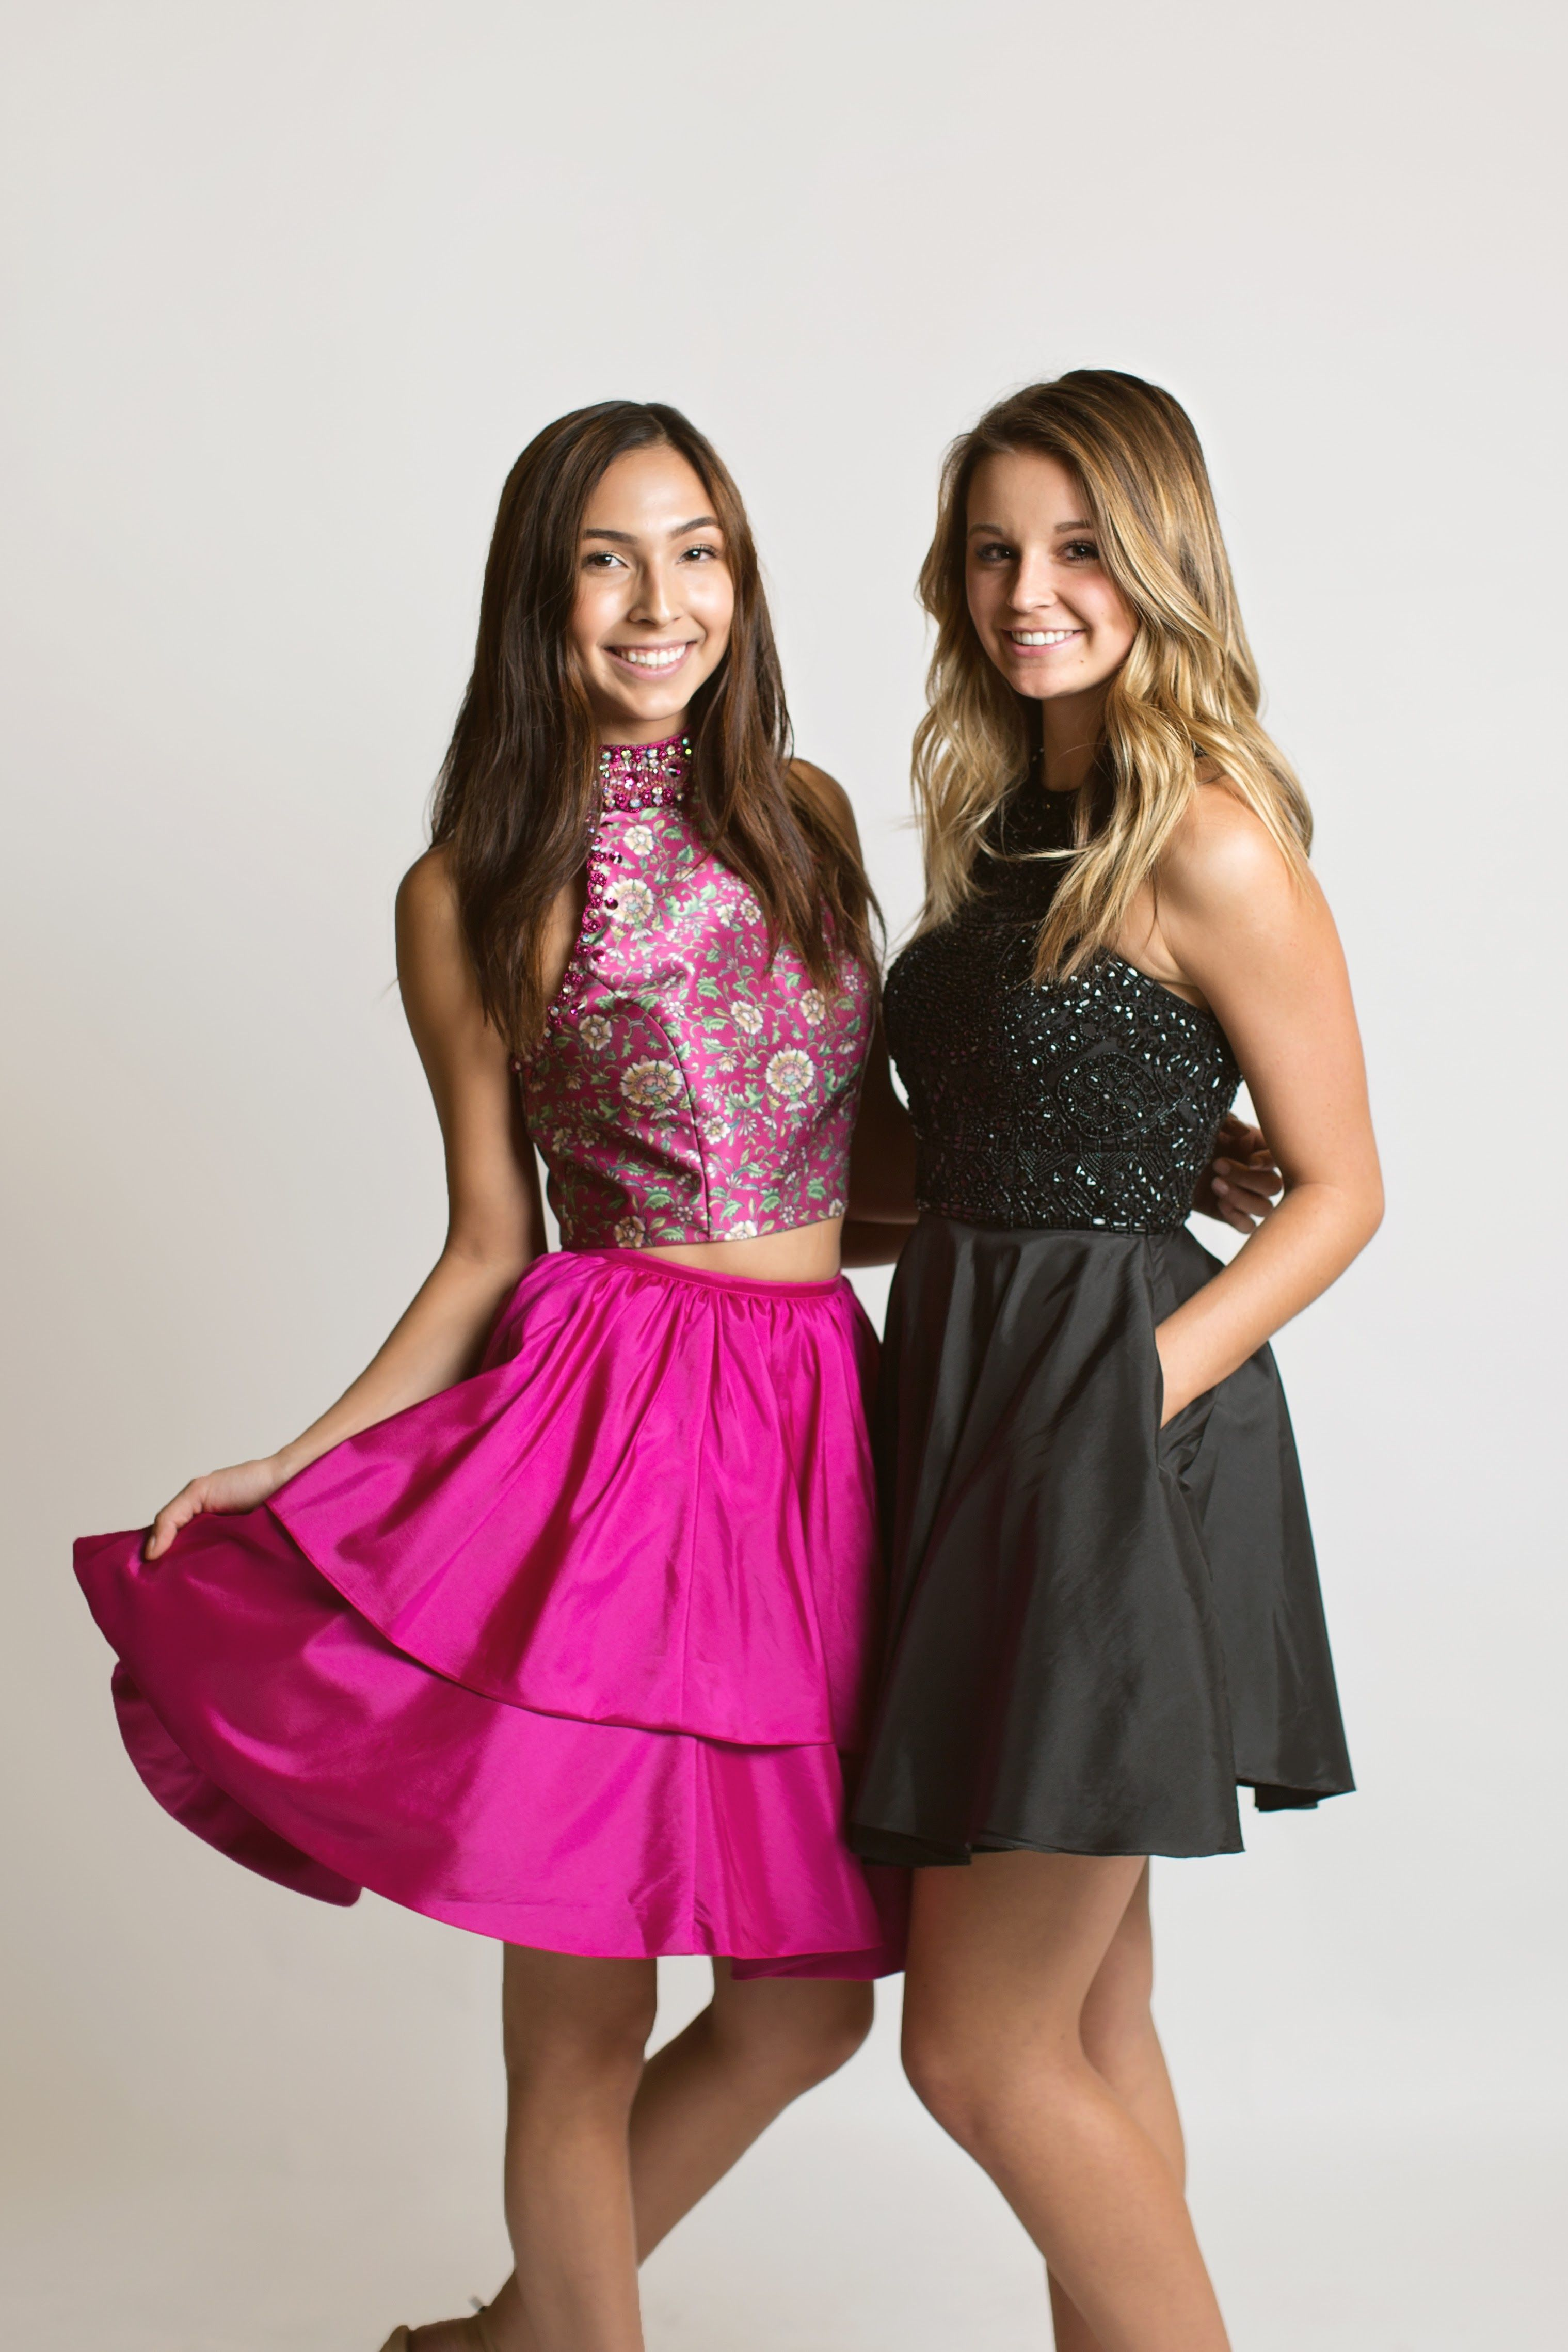 e9635e54fed6 Sherri Hill Short Magenta Hot Pink and Short Black Party NYE New Years Eve Glamour  Dresses Ypsilon Dresses Prom Pageant Homecoming Sweethearts Special ...